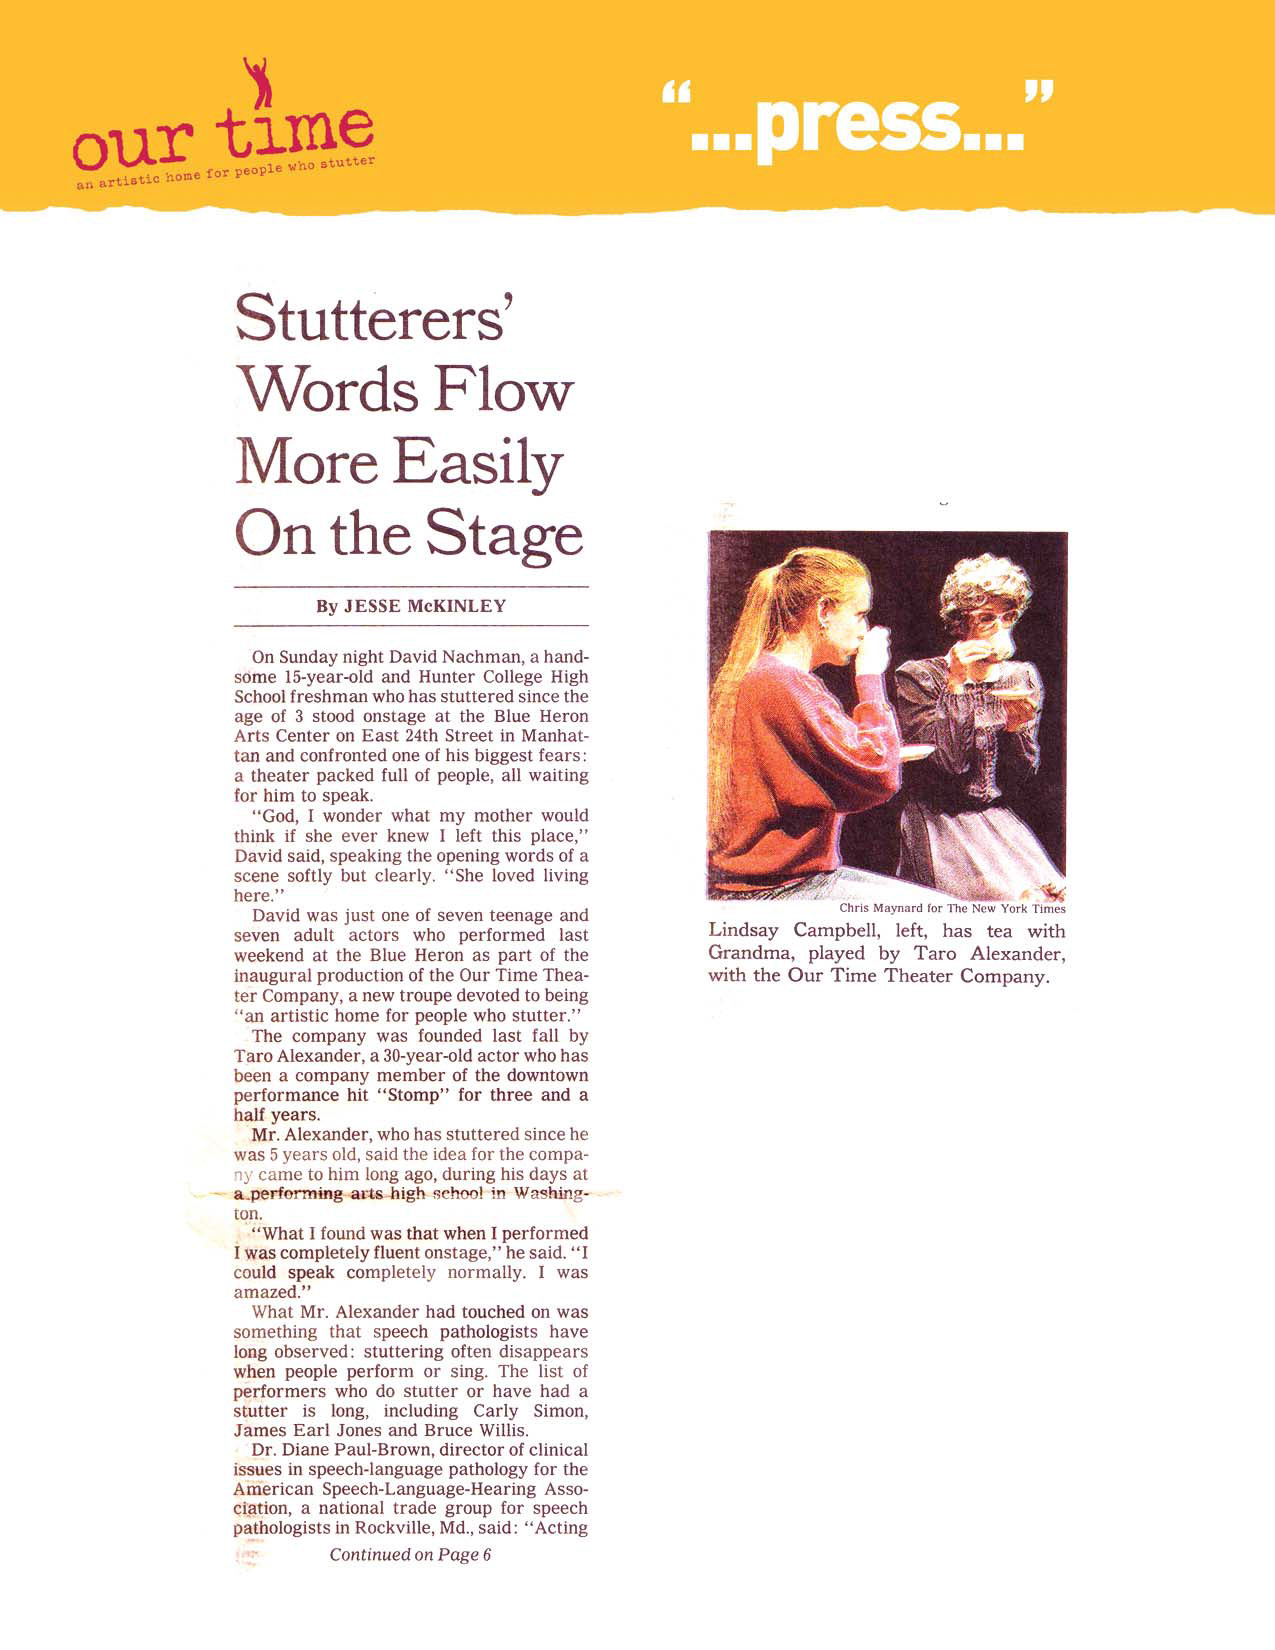 Stutterers' Words Flow More Easily On the Stage